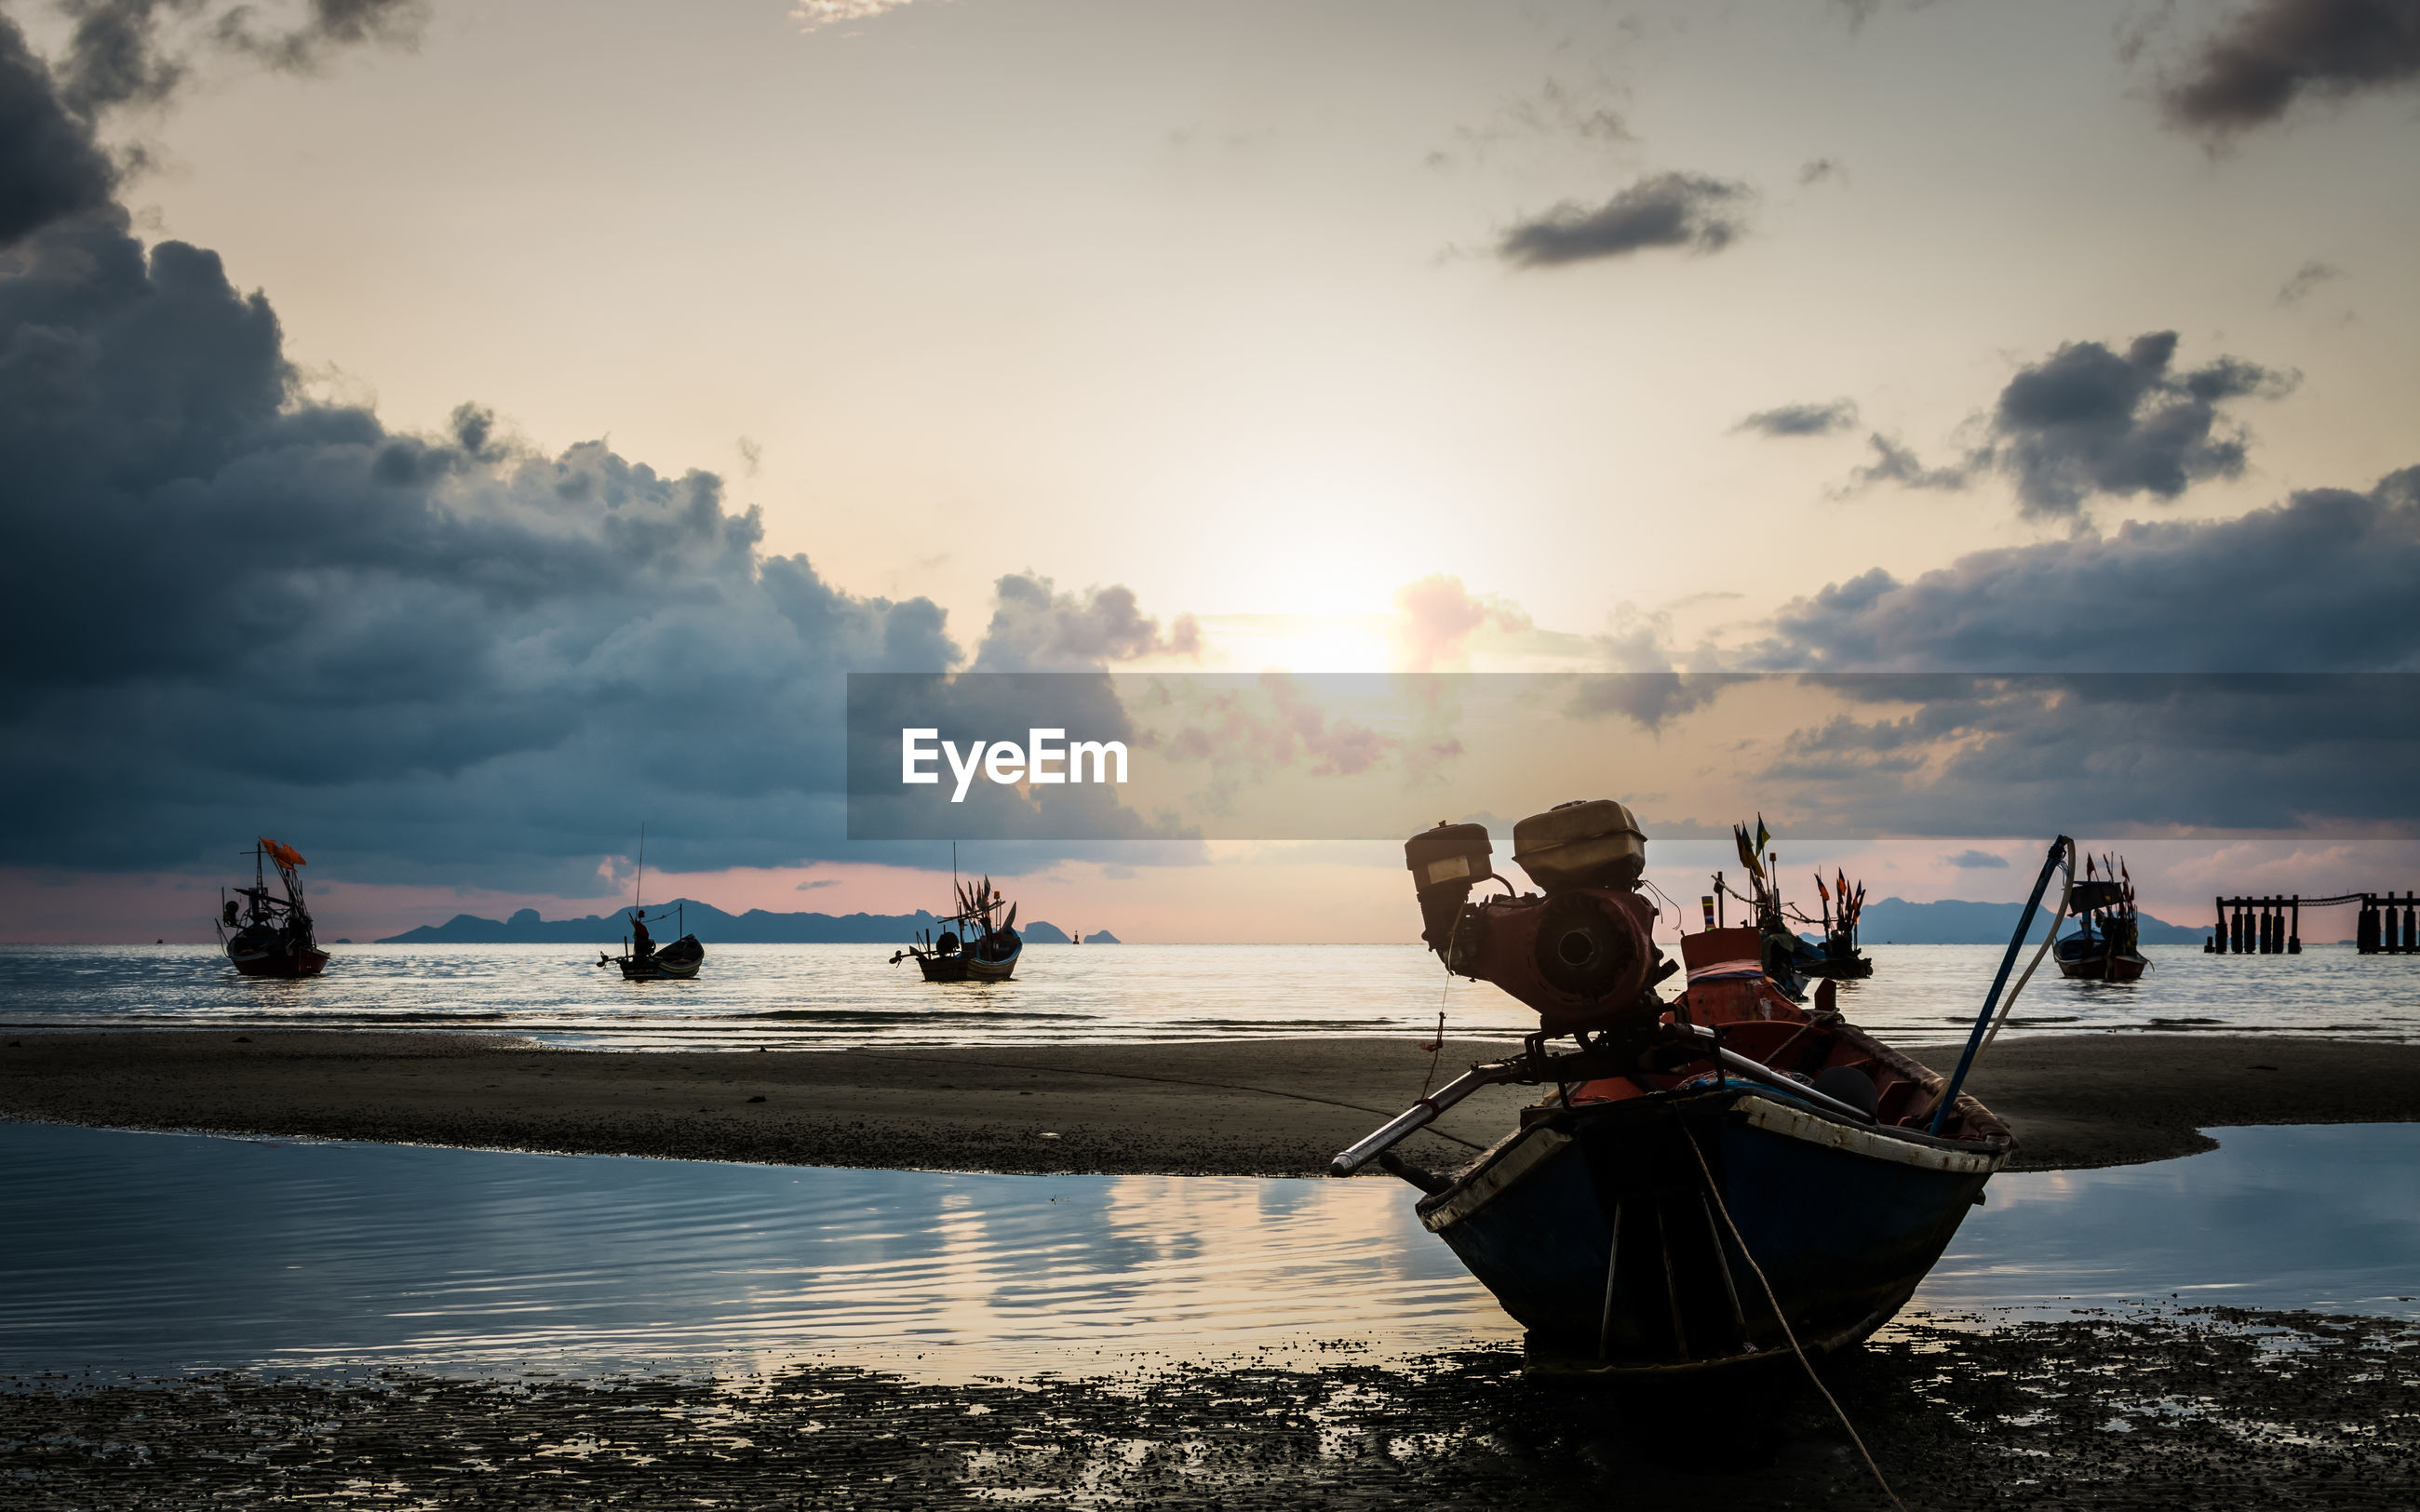 Many fishing boat in the sea when low tide under the sun